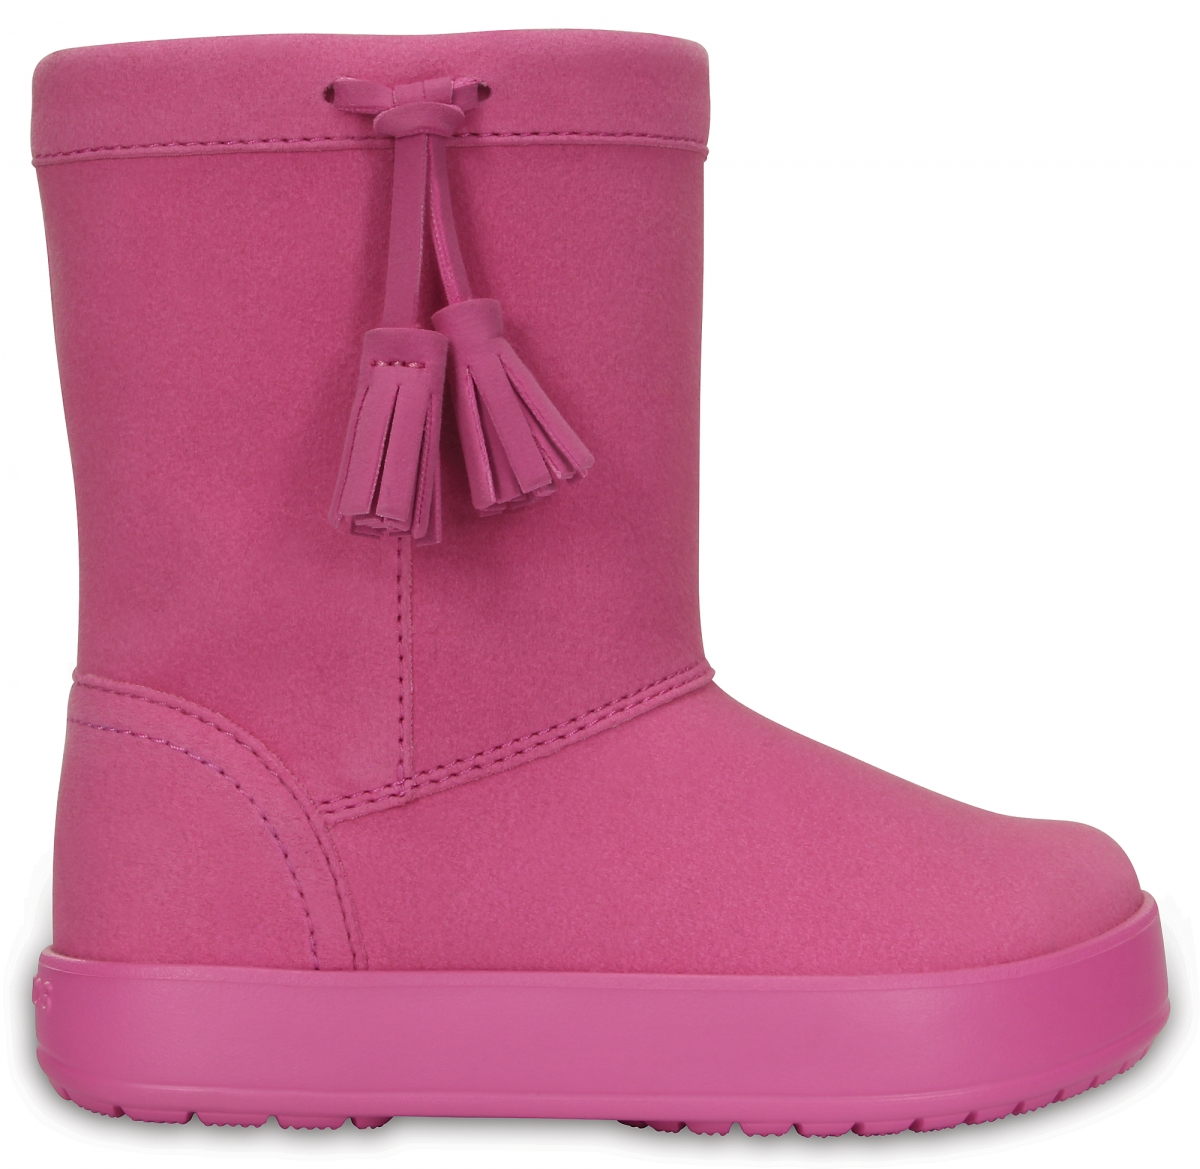 Crocs LodgePoint Boot Kids - Party Pink, C7 (23-24)